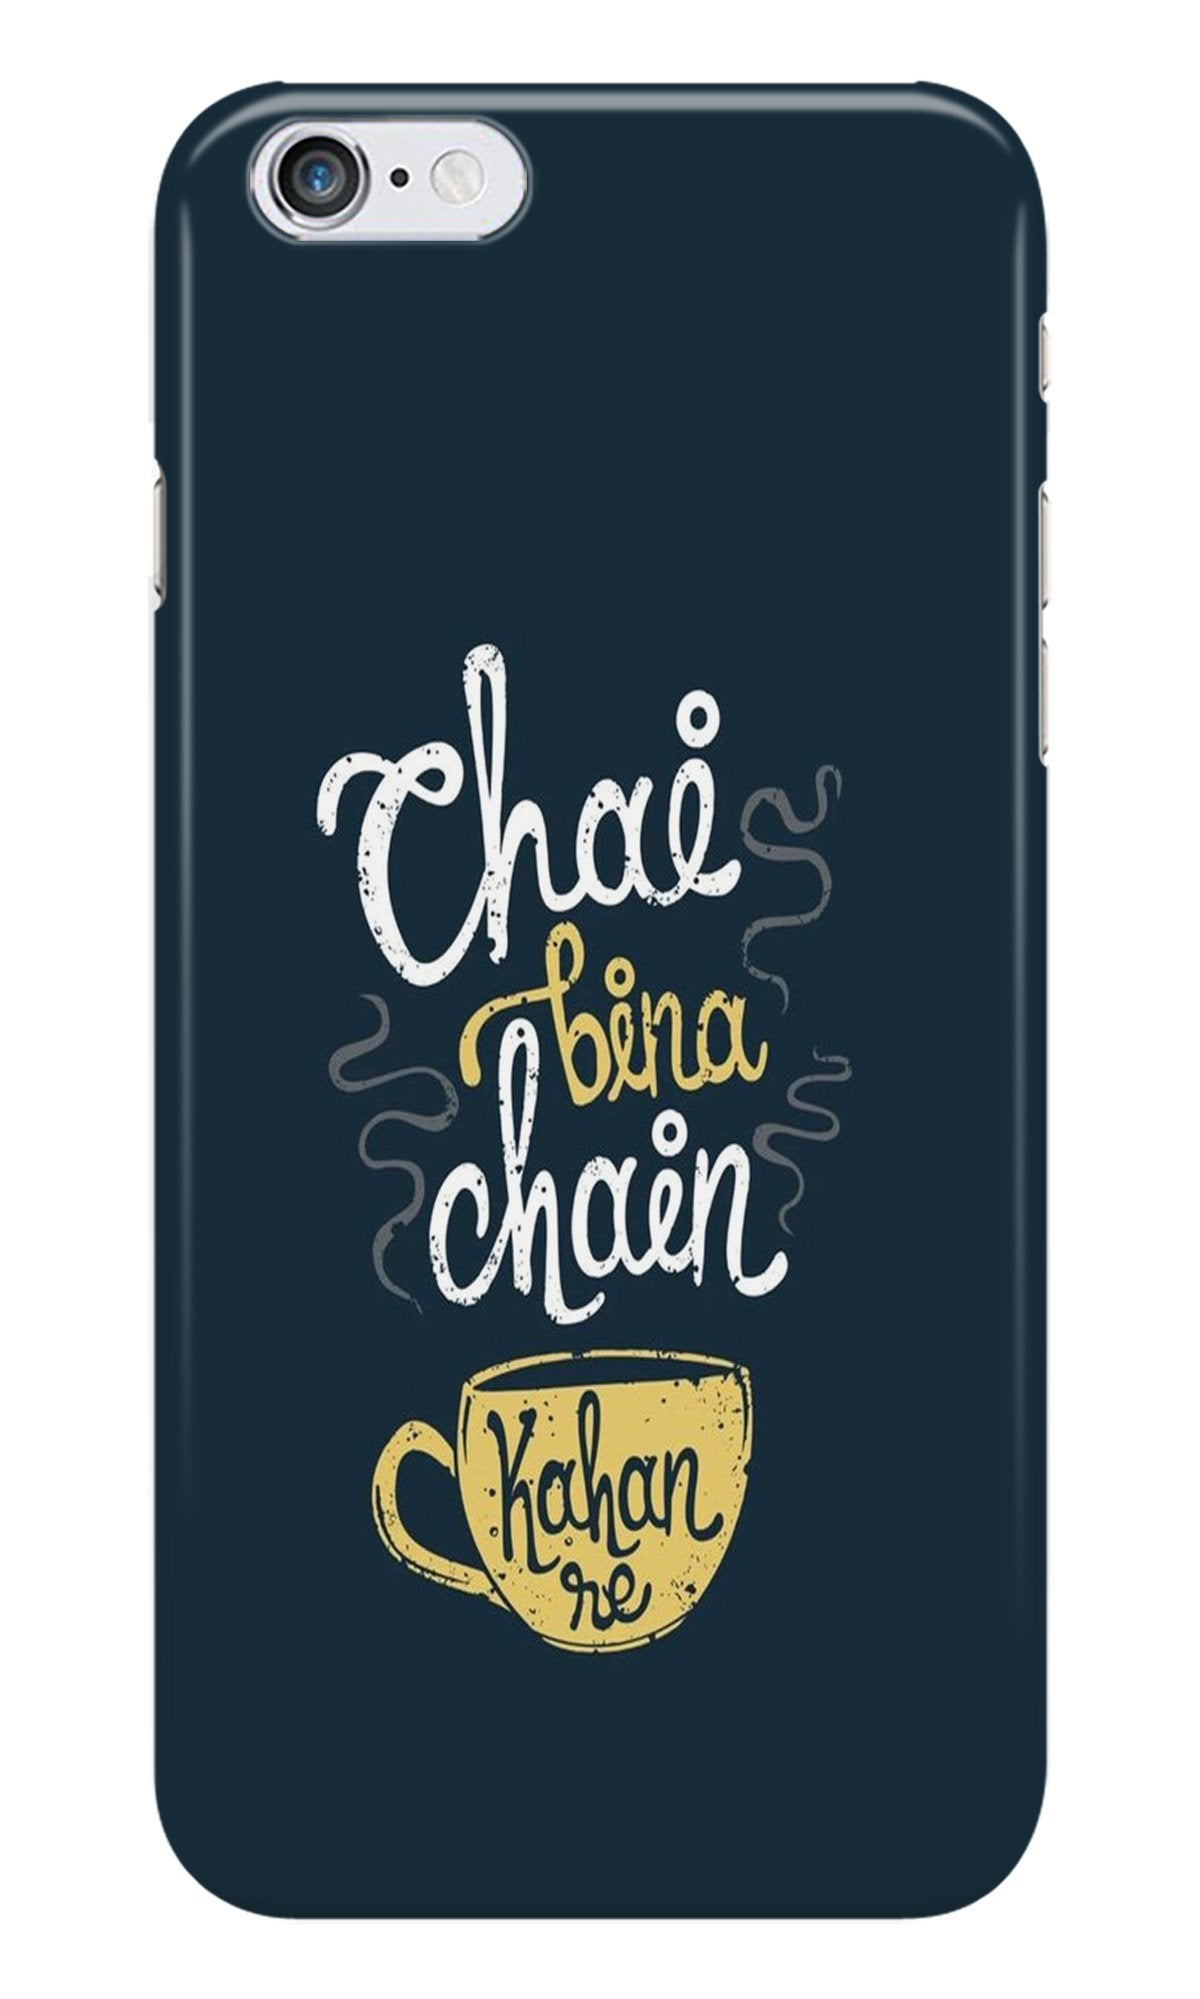 Chai Bina Chain Kahan Case for iPhone 6/ 6s  (Design - 144)